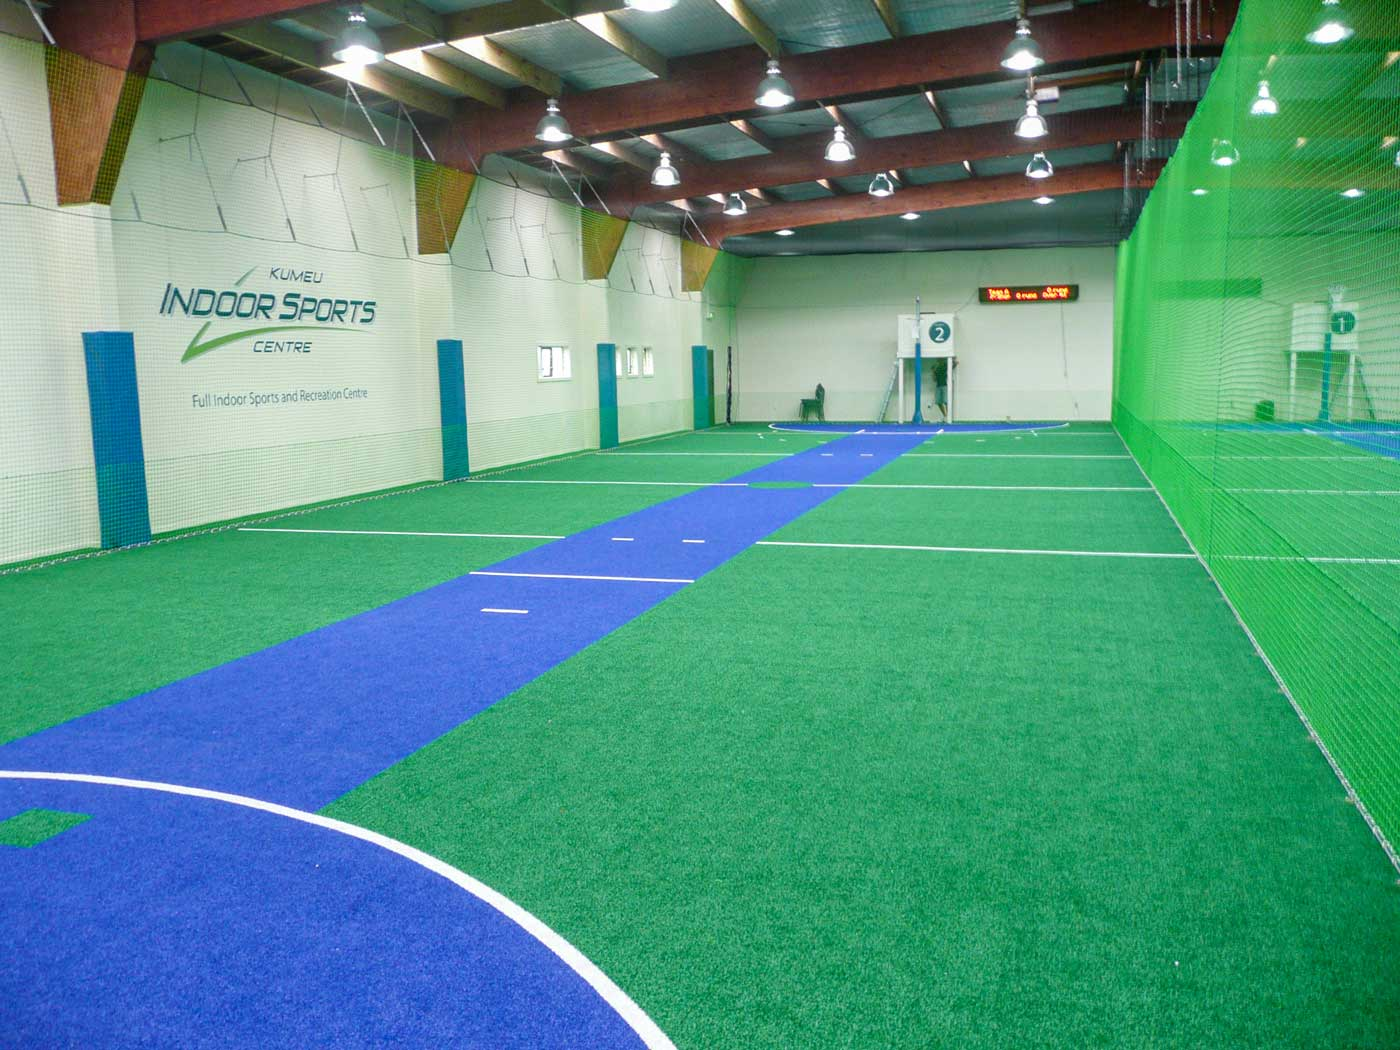 Kumeu Indoor Cricket - Kumeu Indoor Sports Centre